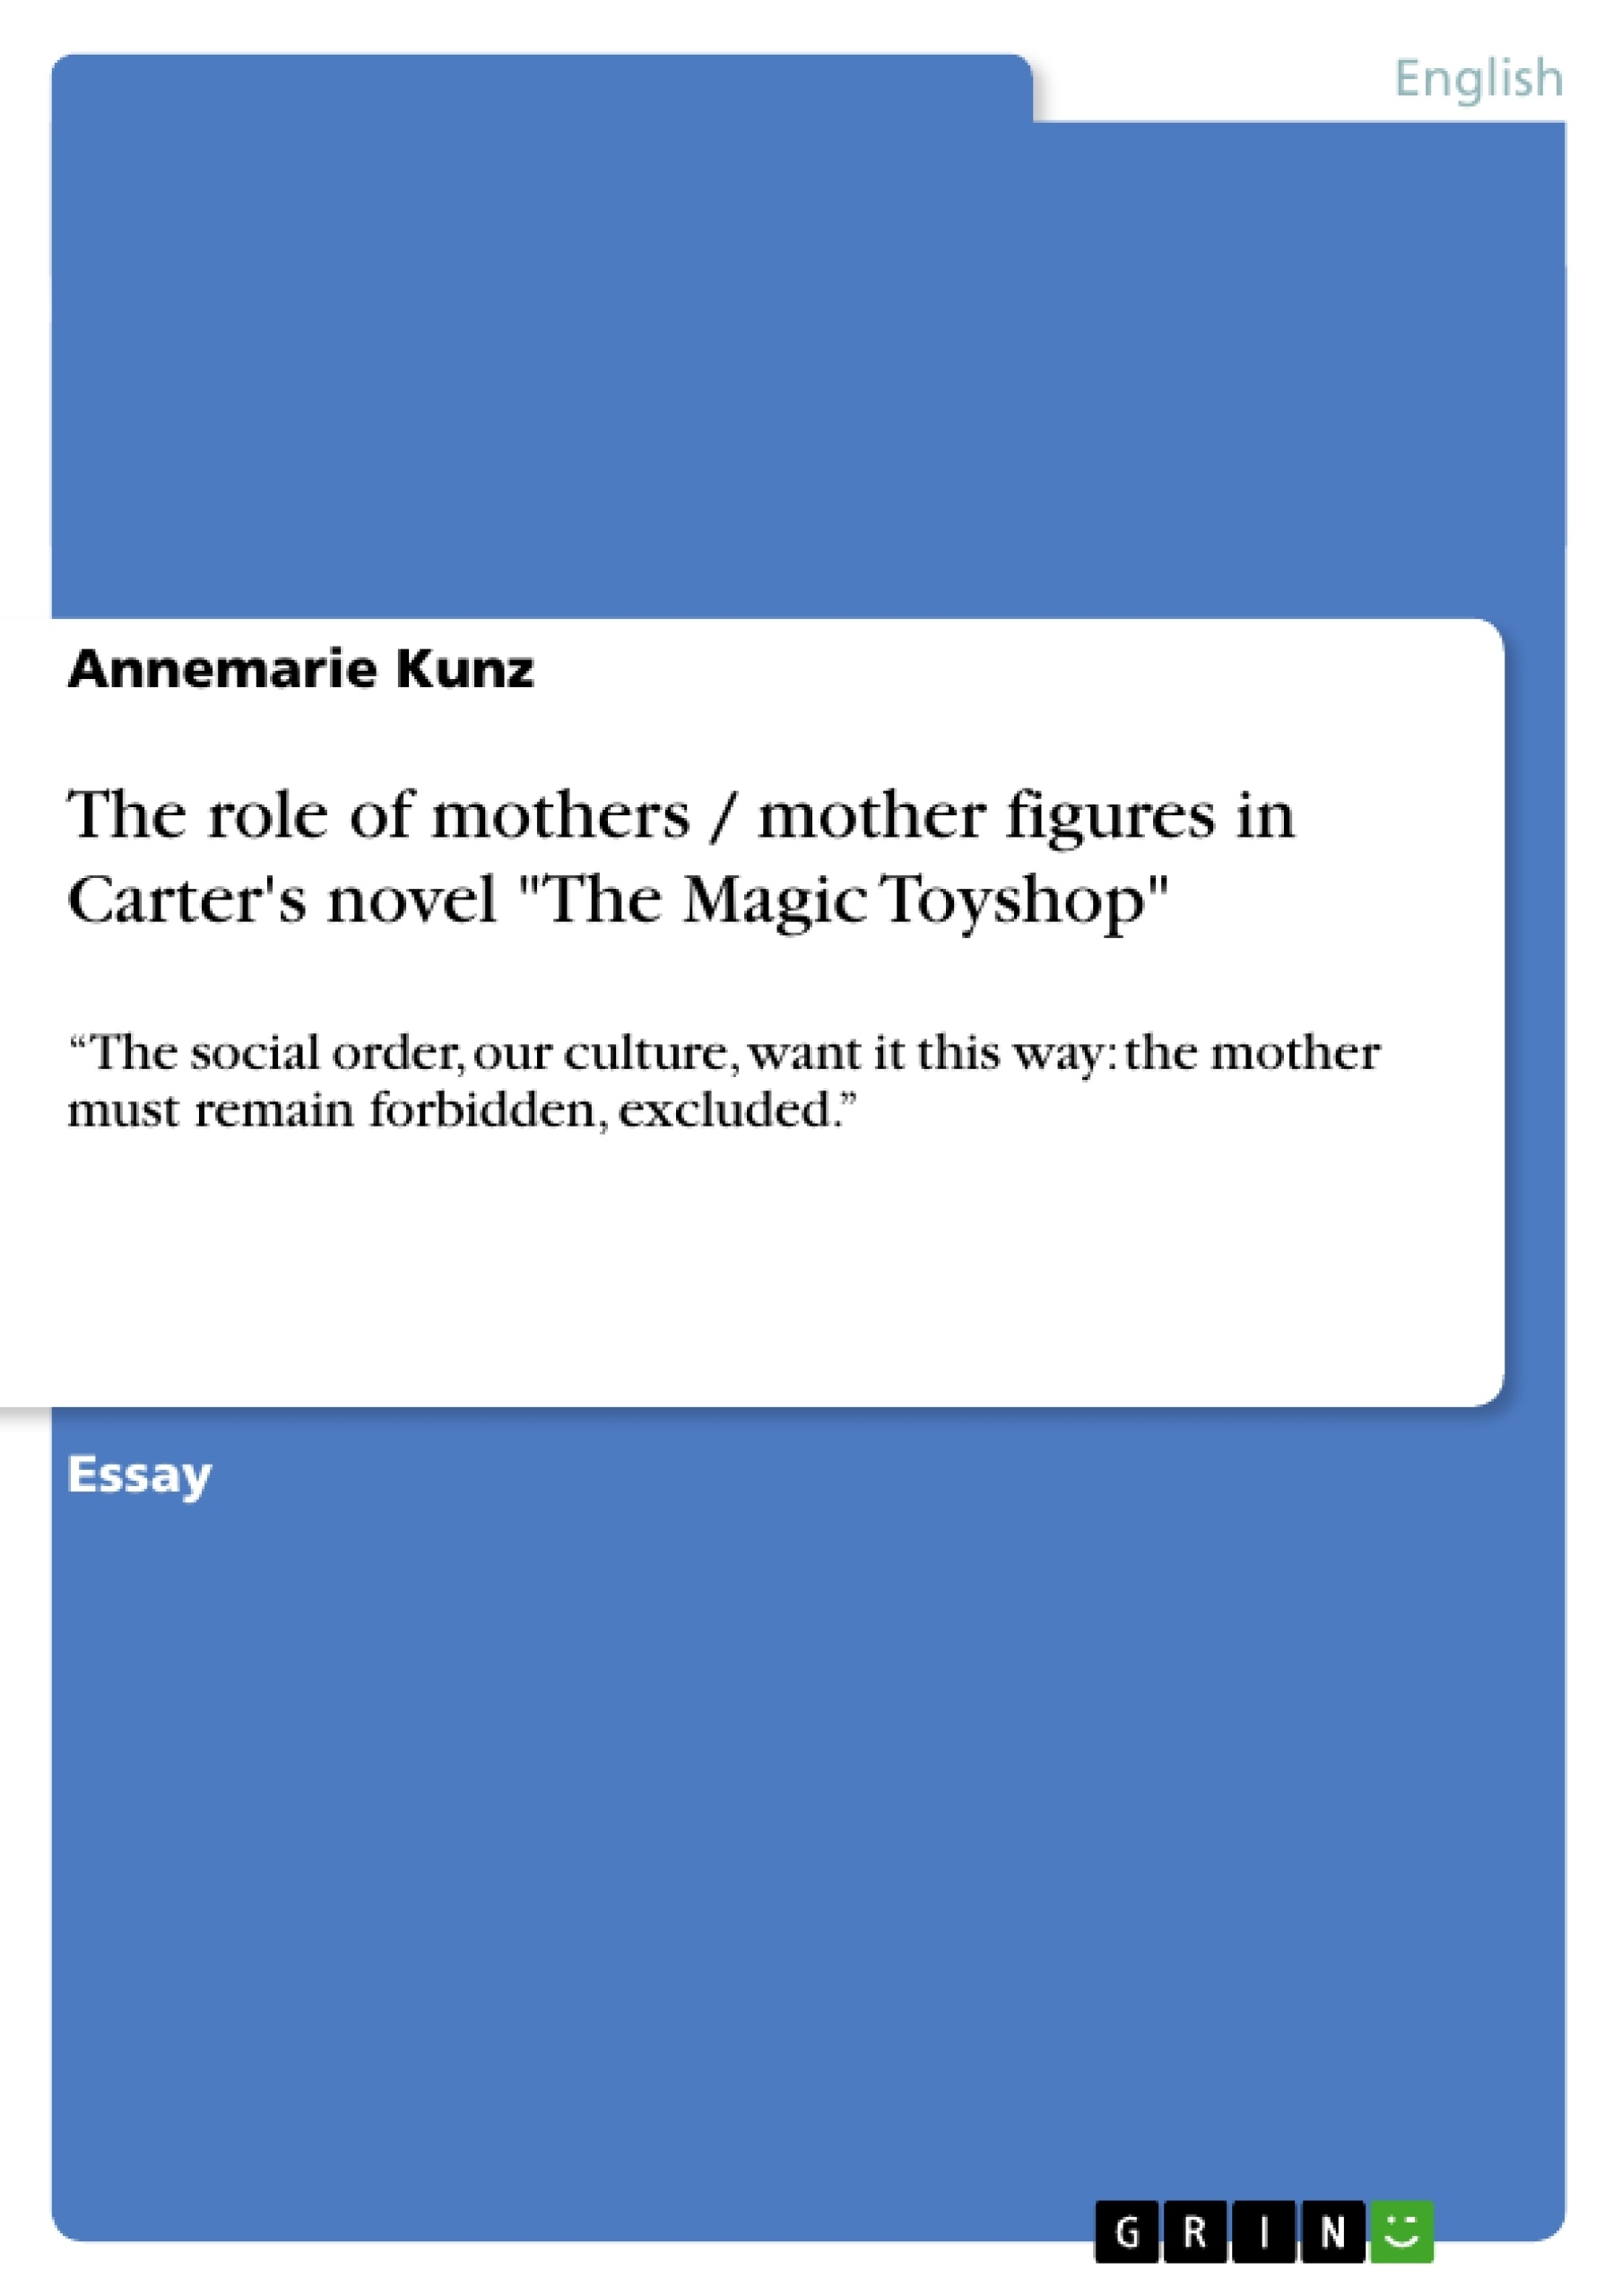 the role of mothers mother figures in carter s novel the magic  upload your own papers earn money and win an iphone x